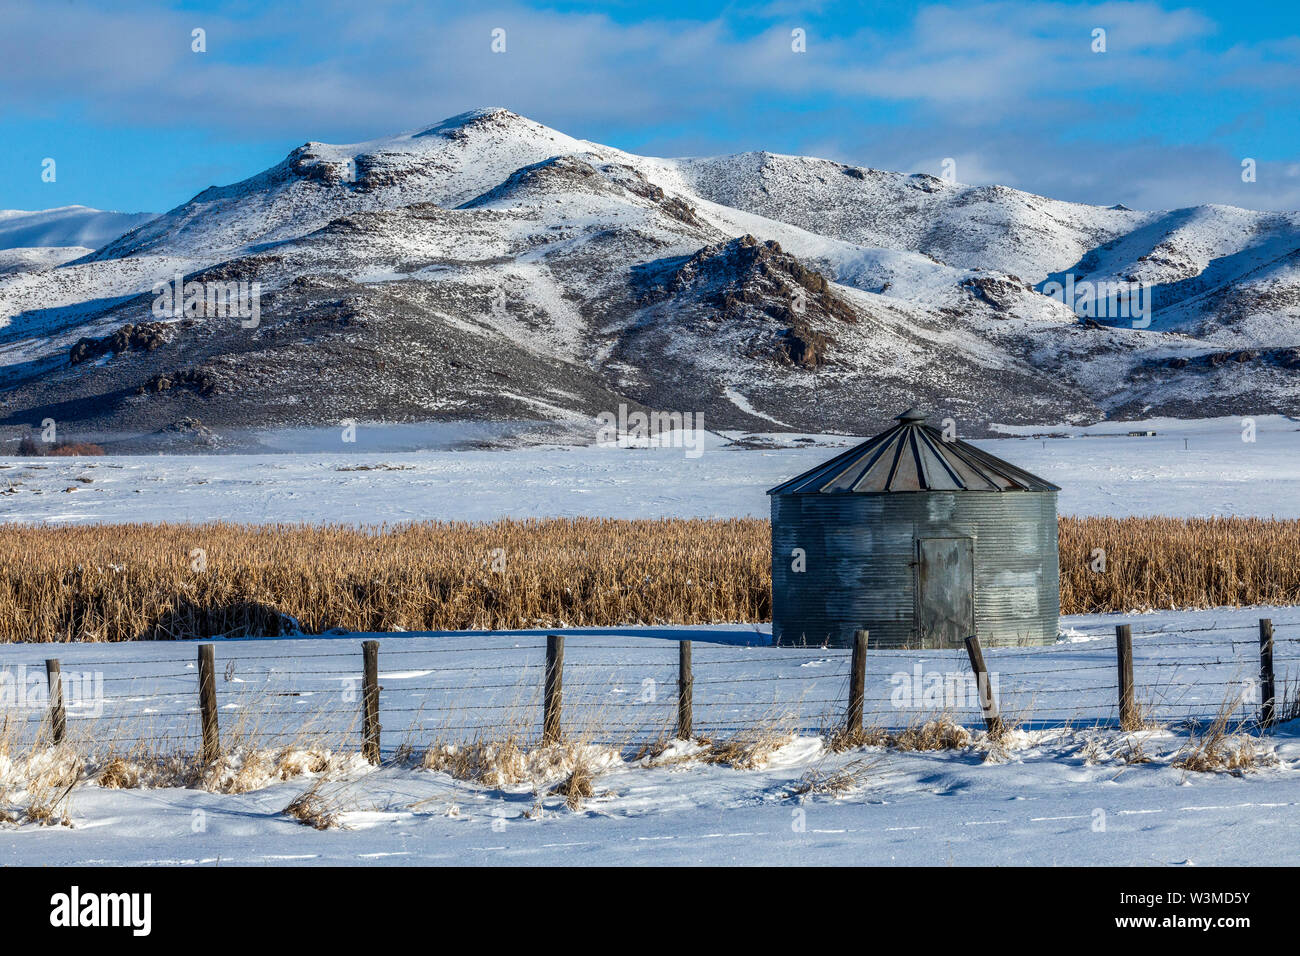 Grain silo in field by mountain during winter - Stock Image